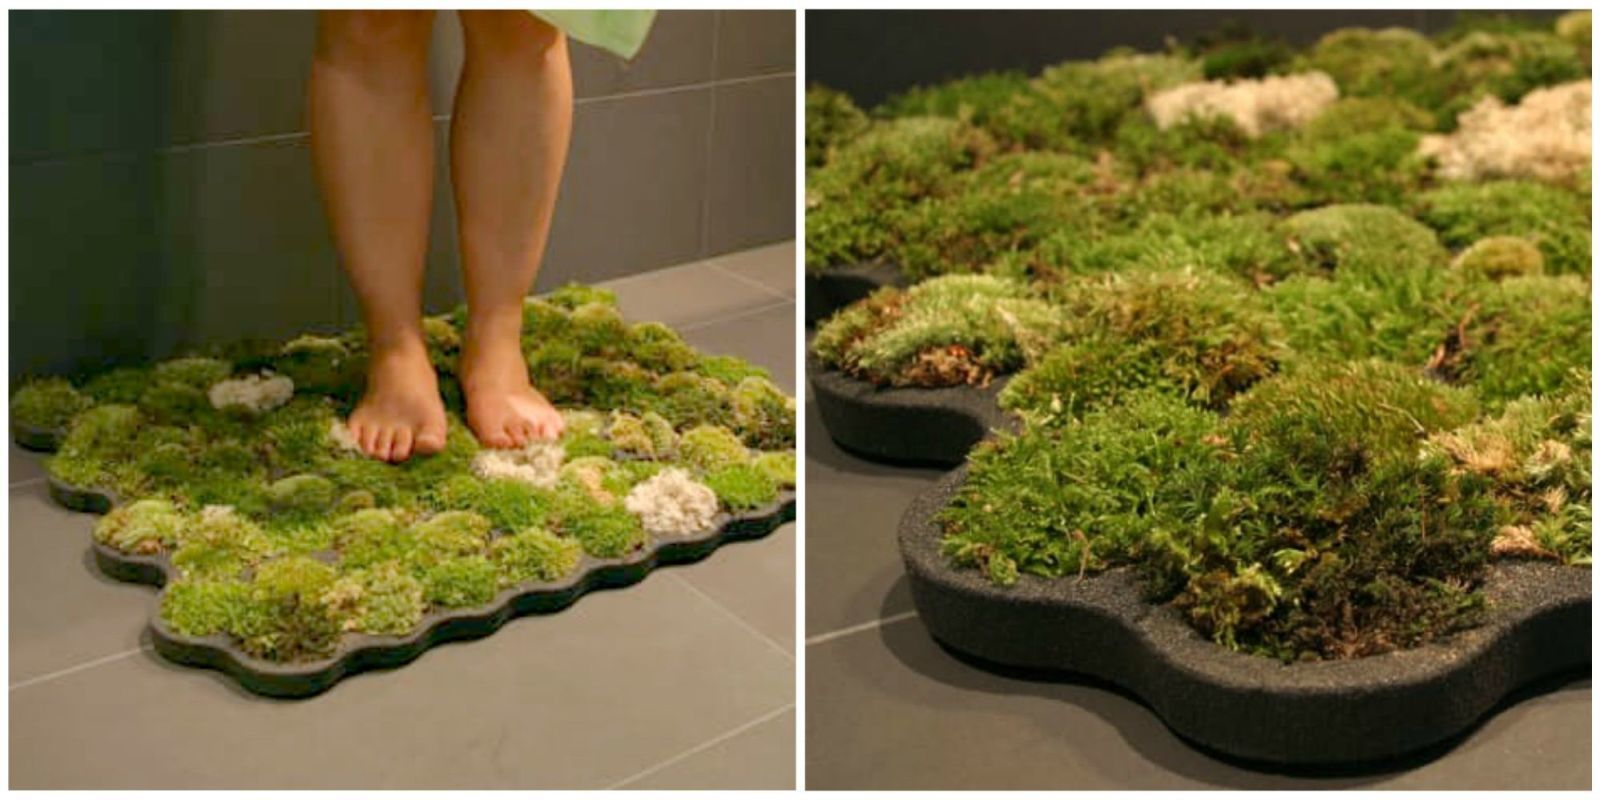 Moss bath mat- Nature in your bathroom. Plus, you never have to wash it.